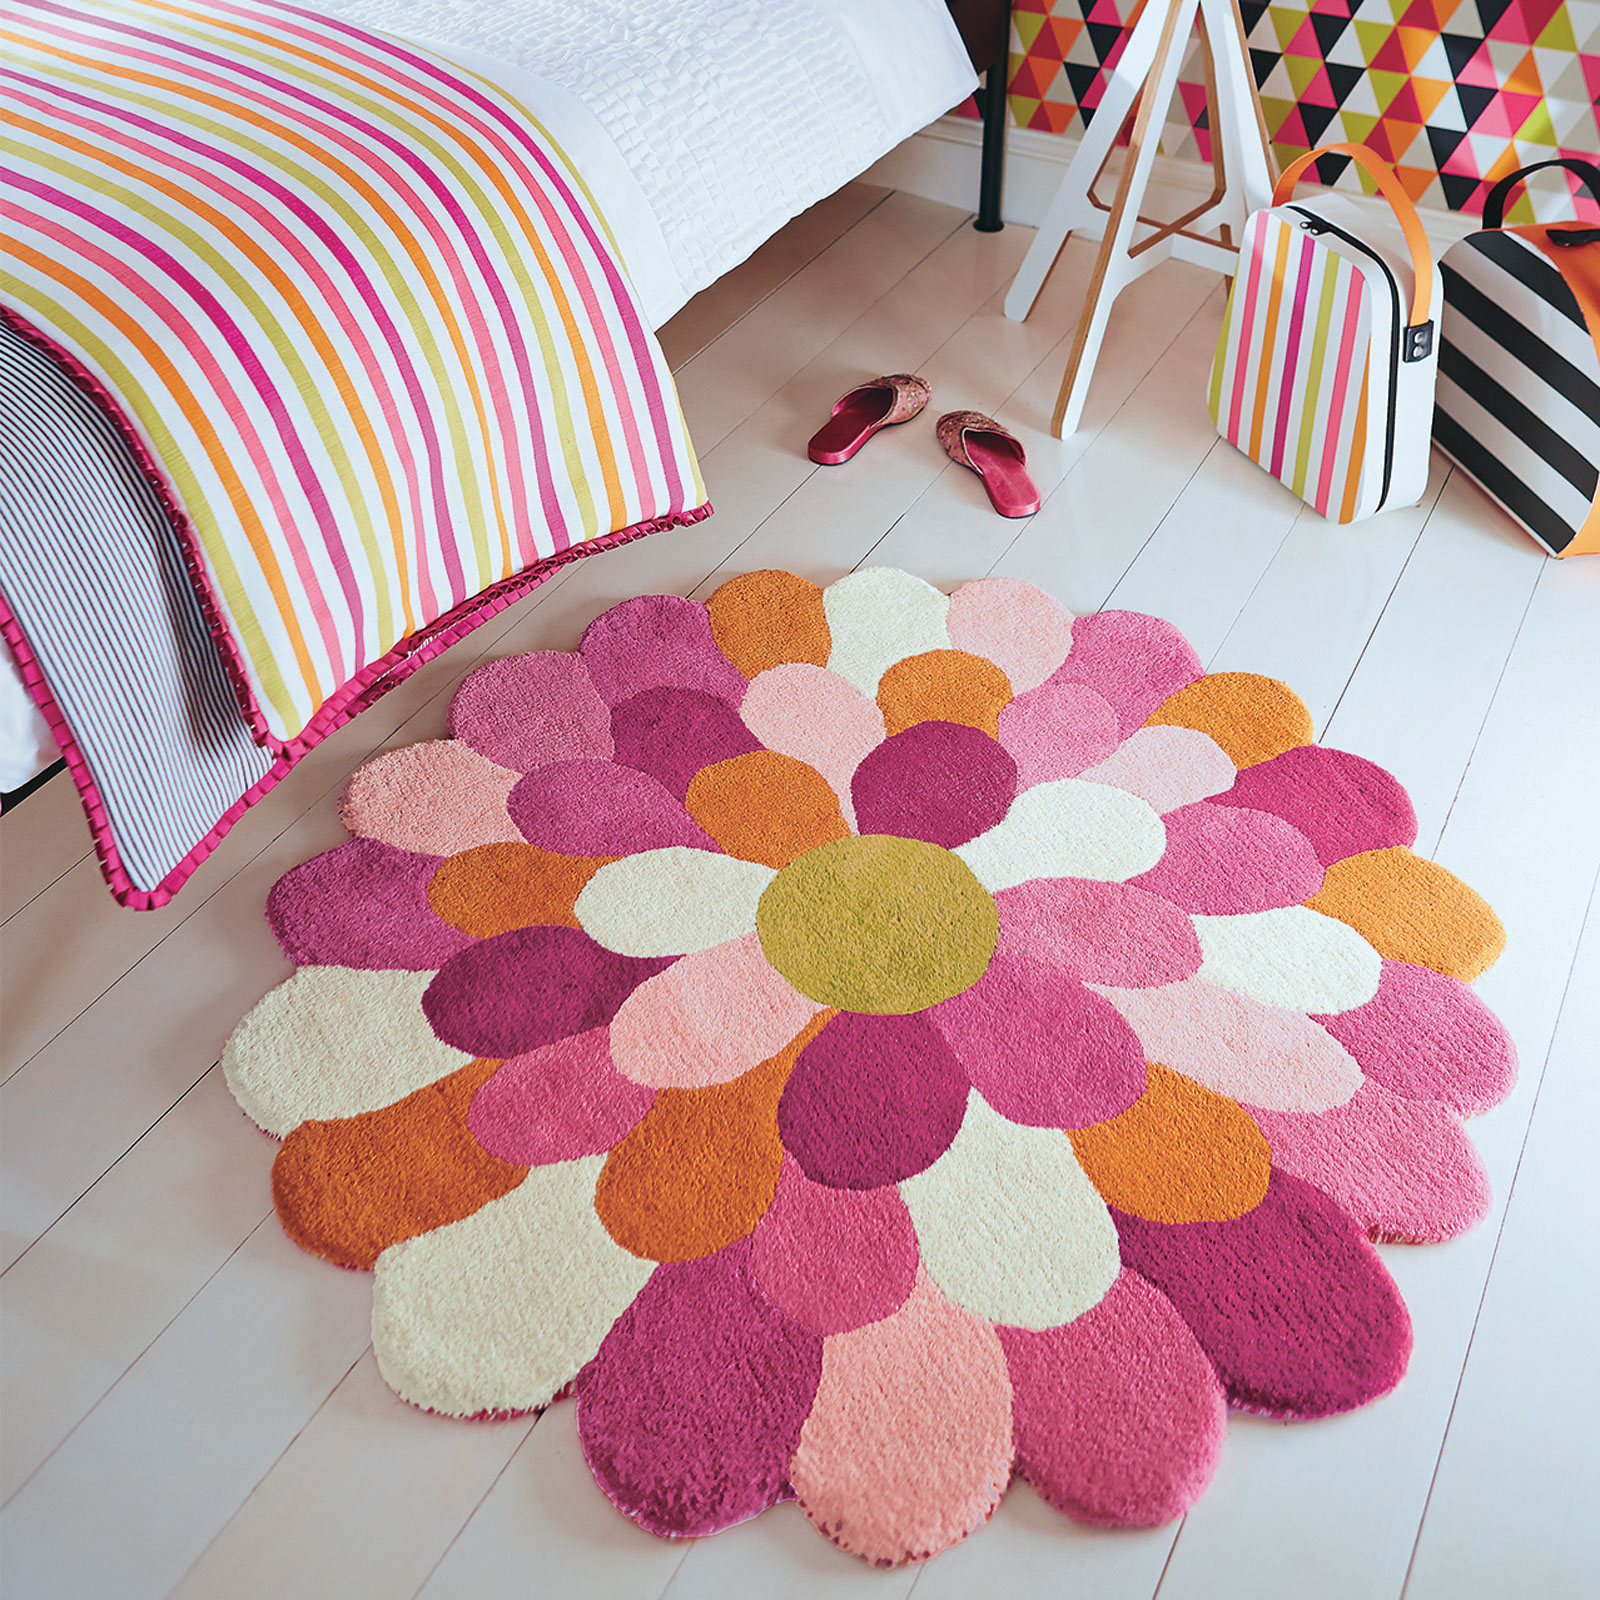 Funky Flower Rugs 42702 by Harlequin Kids